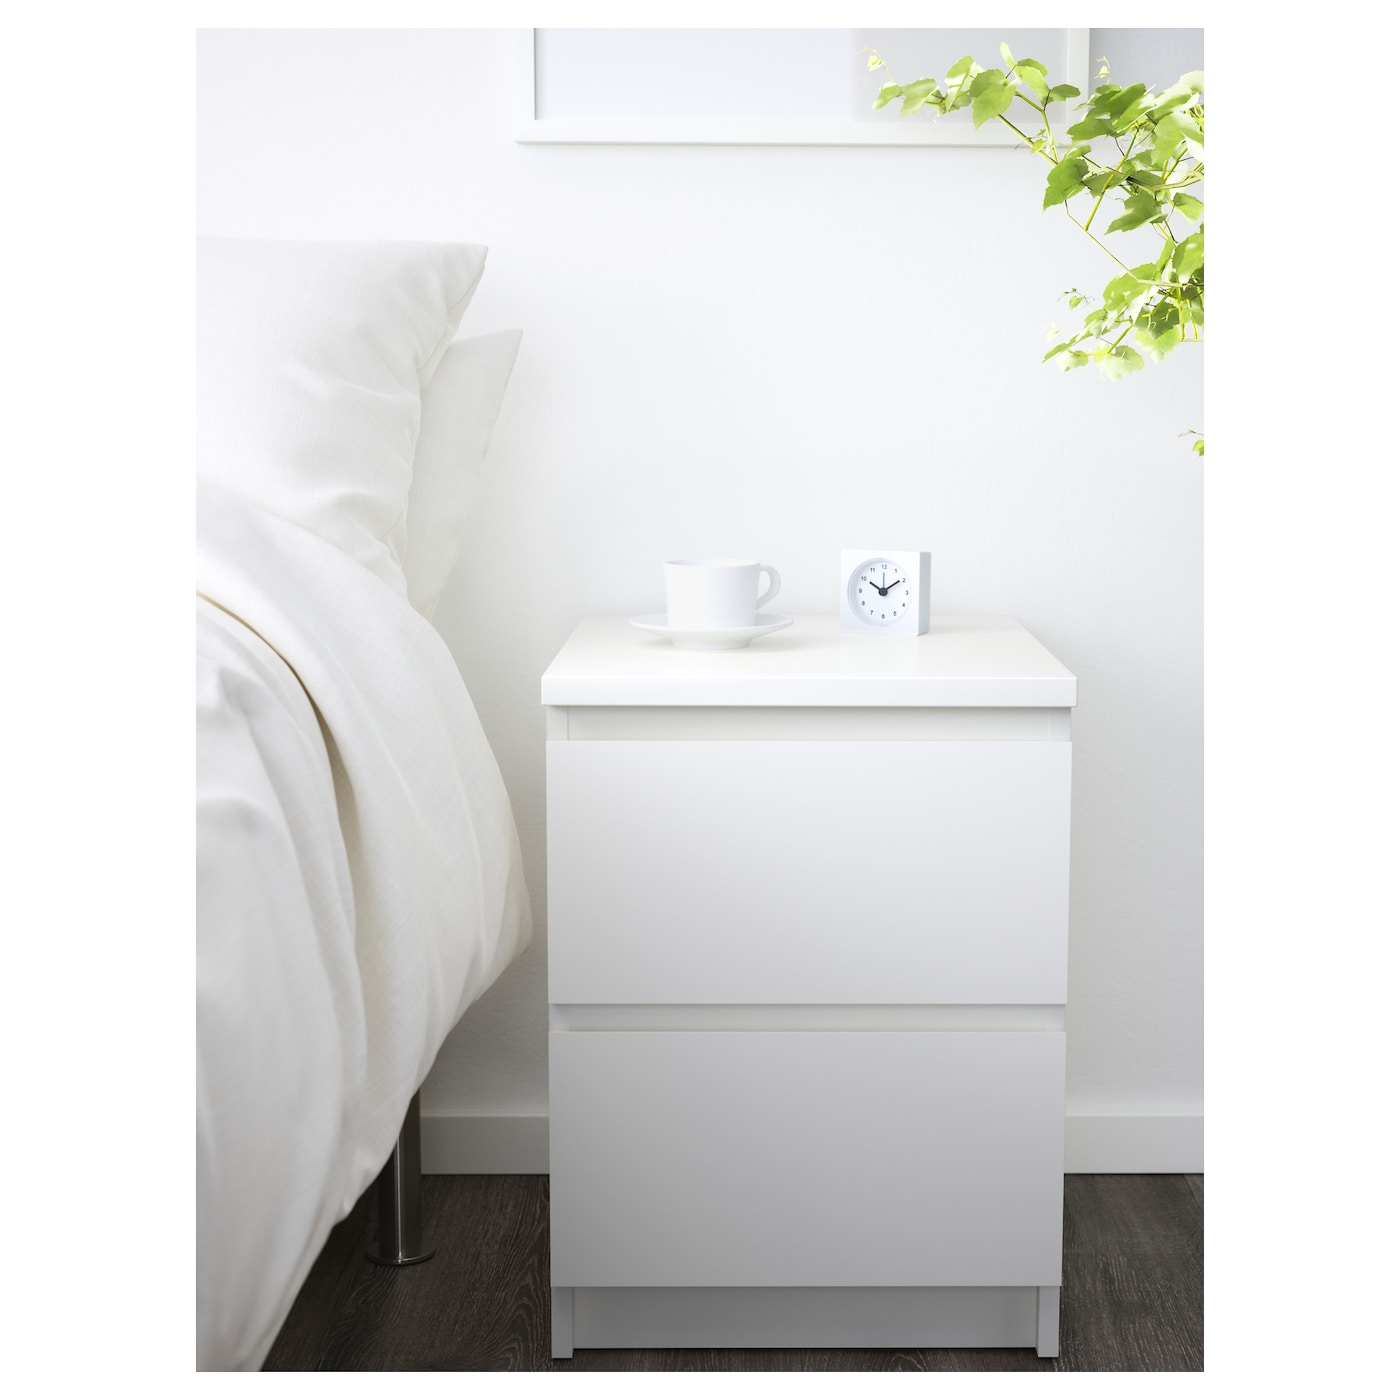 Malm chest of 2 drawers white 40 x 55 cm ikea - Letto nordli ikea ...